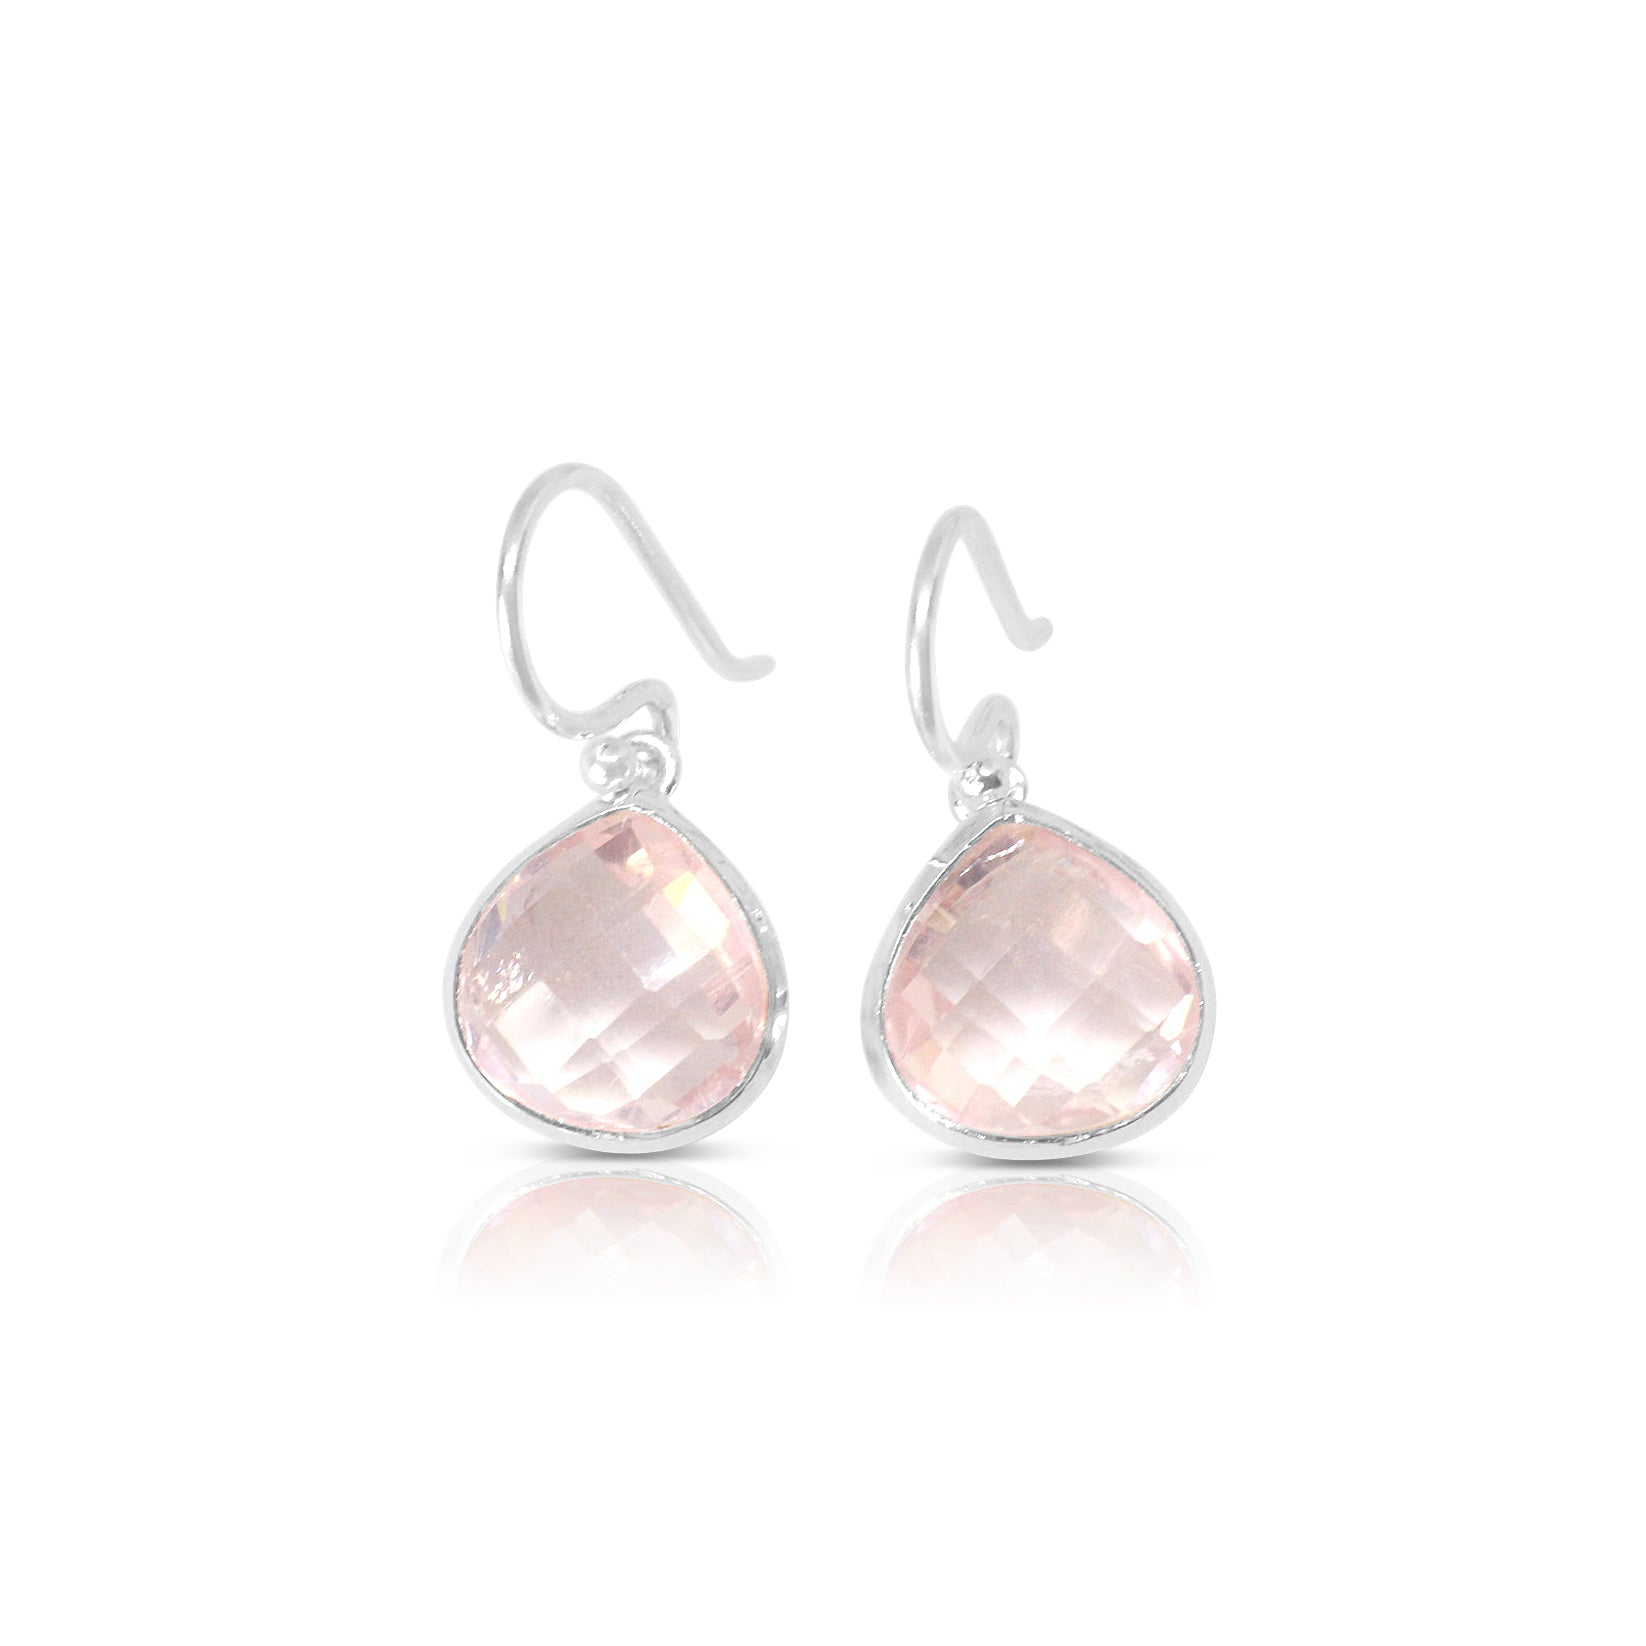 925 Silver Classic Series Earrings - Venus (Rose Quartz)